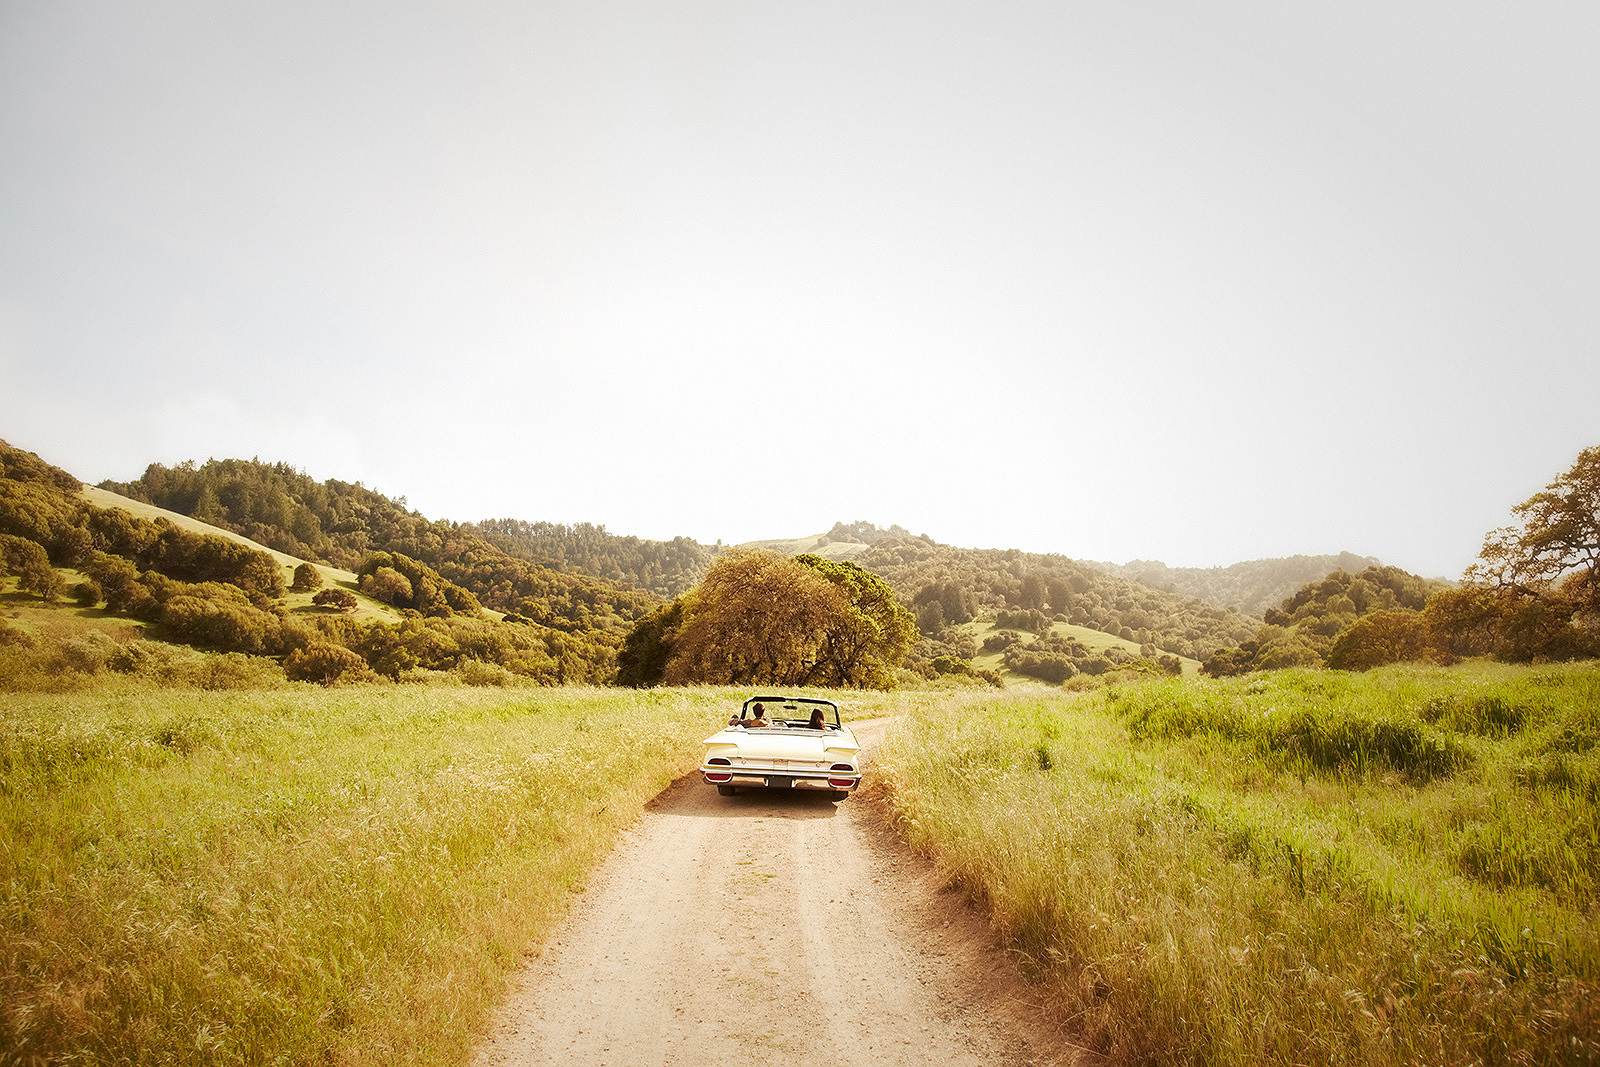 Driving down country road in convertible  | Dovis Bird Agency Photography